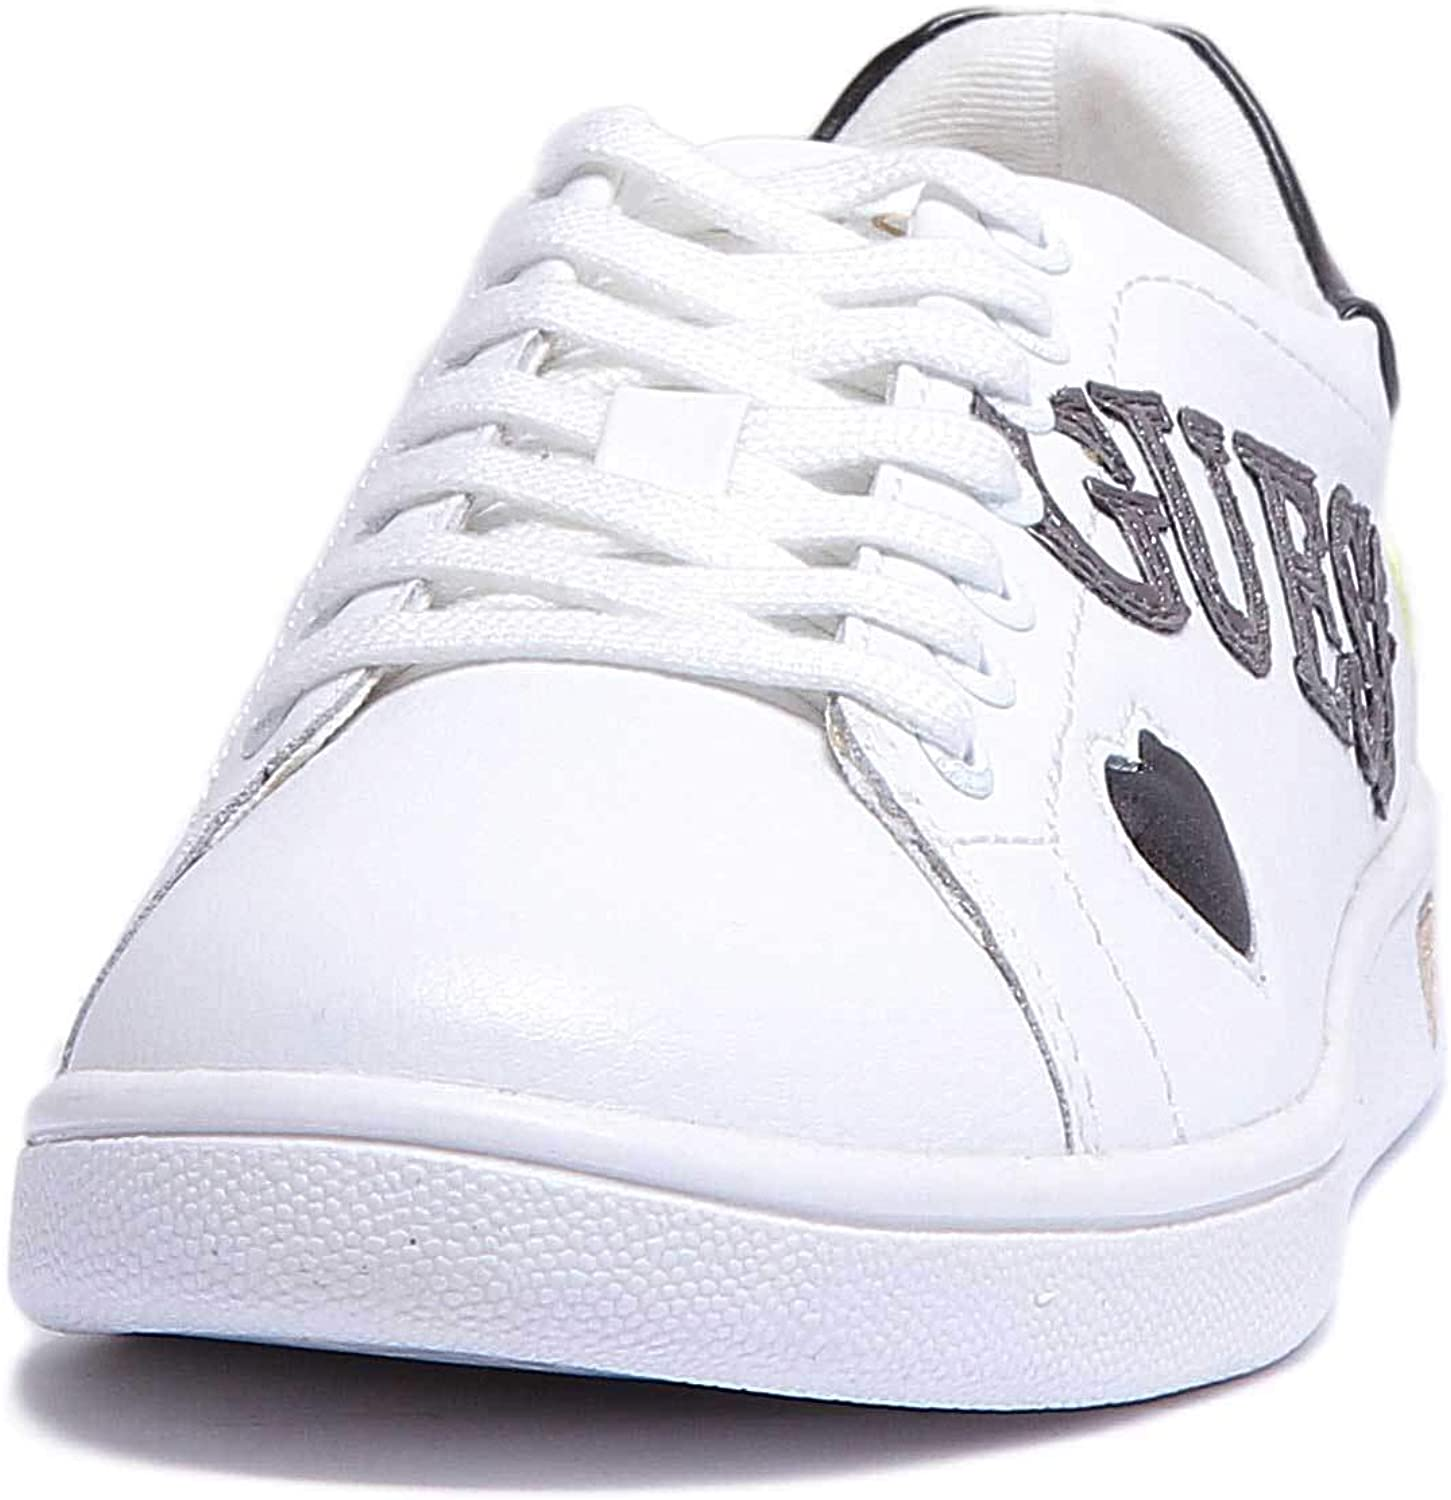 GUESS Flupe3Lea12 Womens Leather Matt Trainer in White